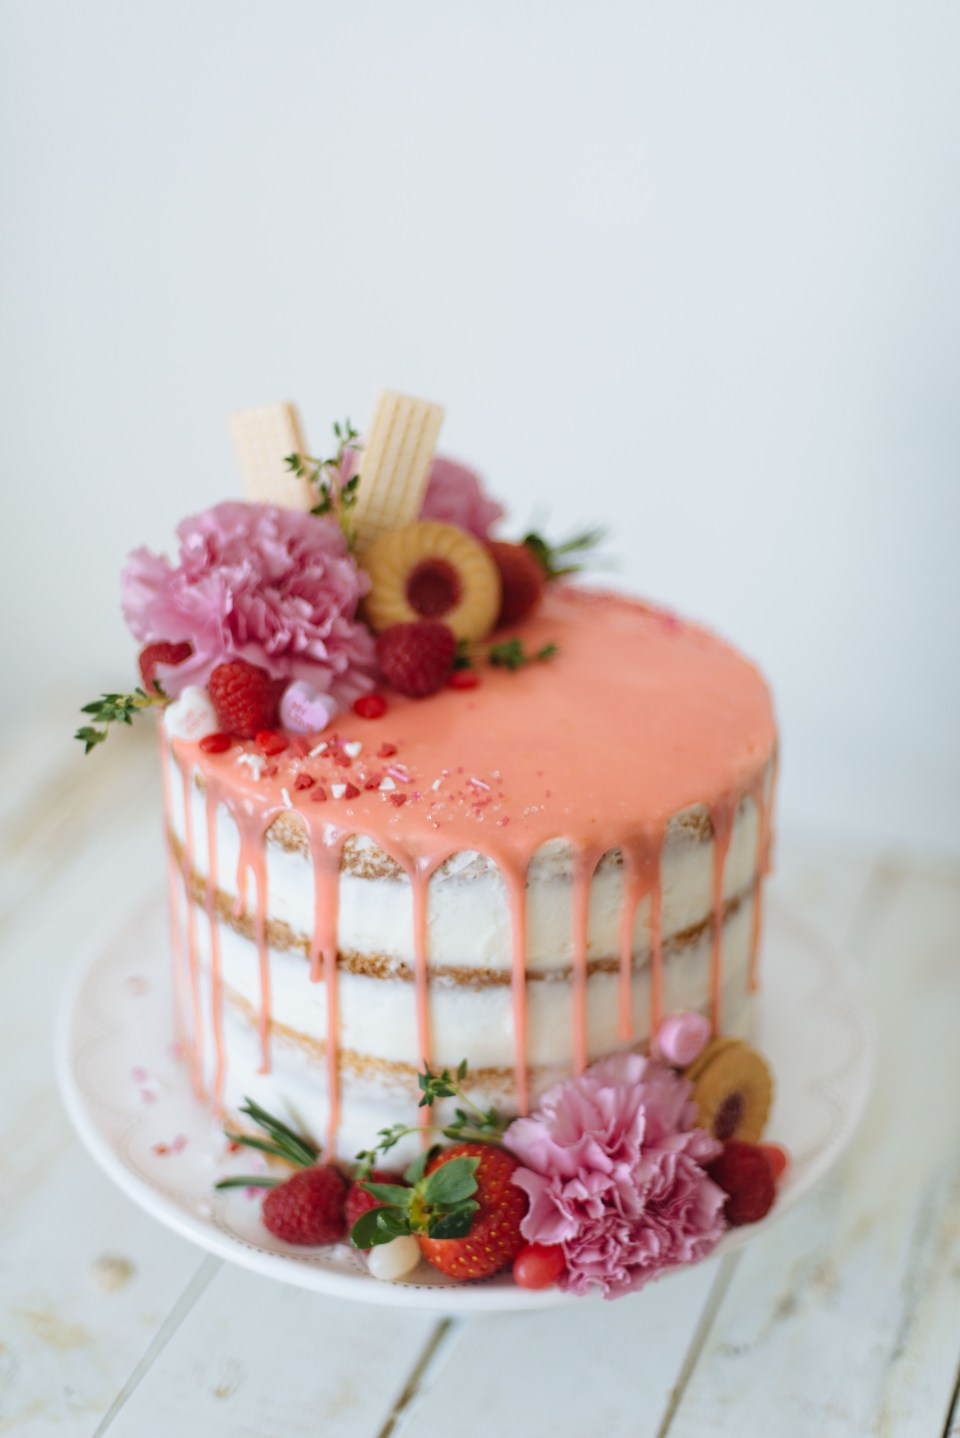 Beautifully Decorated DIY Naked Cake for Valentines Day